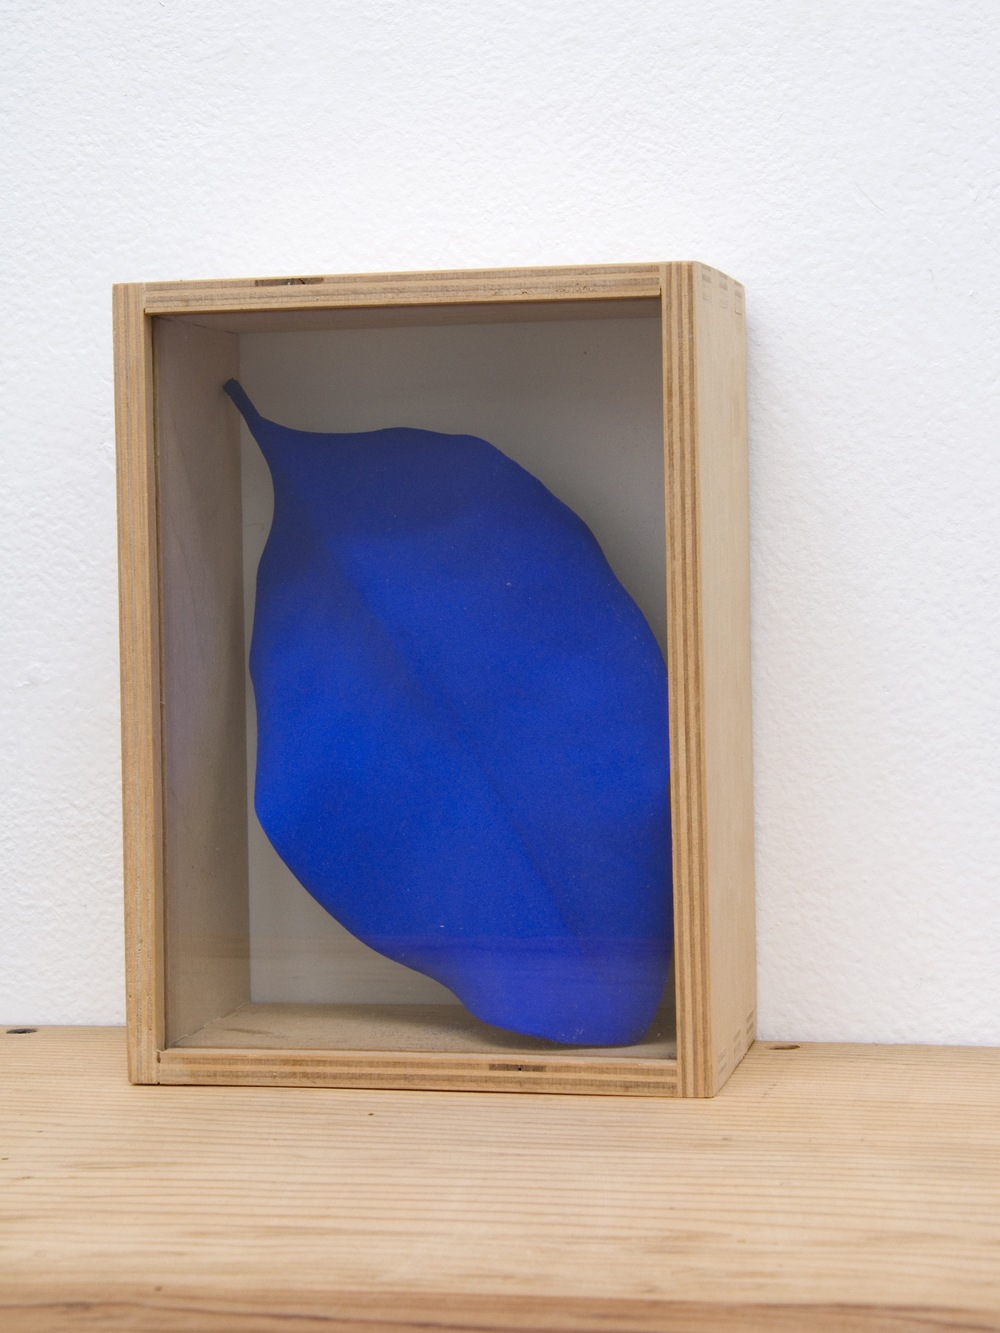 Boxed Leaf, 2001, magnolia leaf, pigment, wood, glass, 7 x 3 x 2 inches